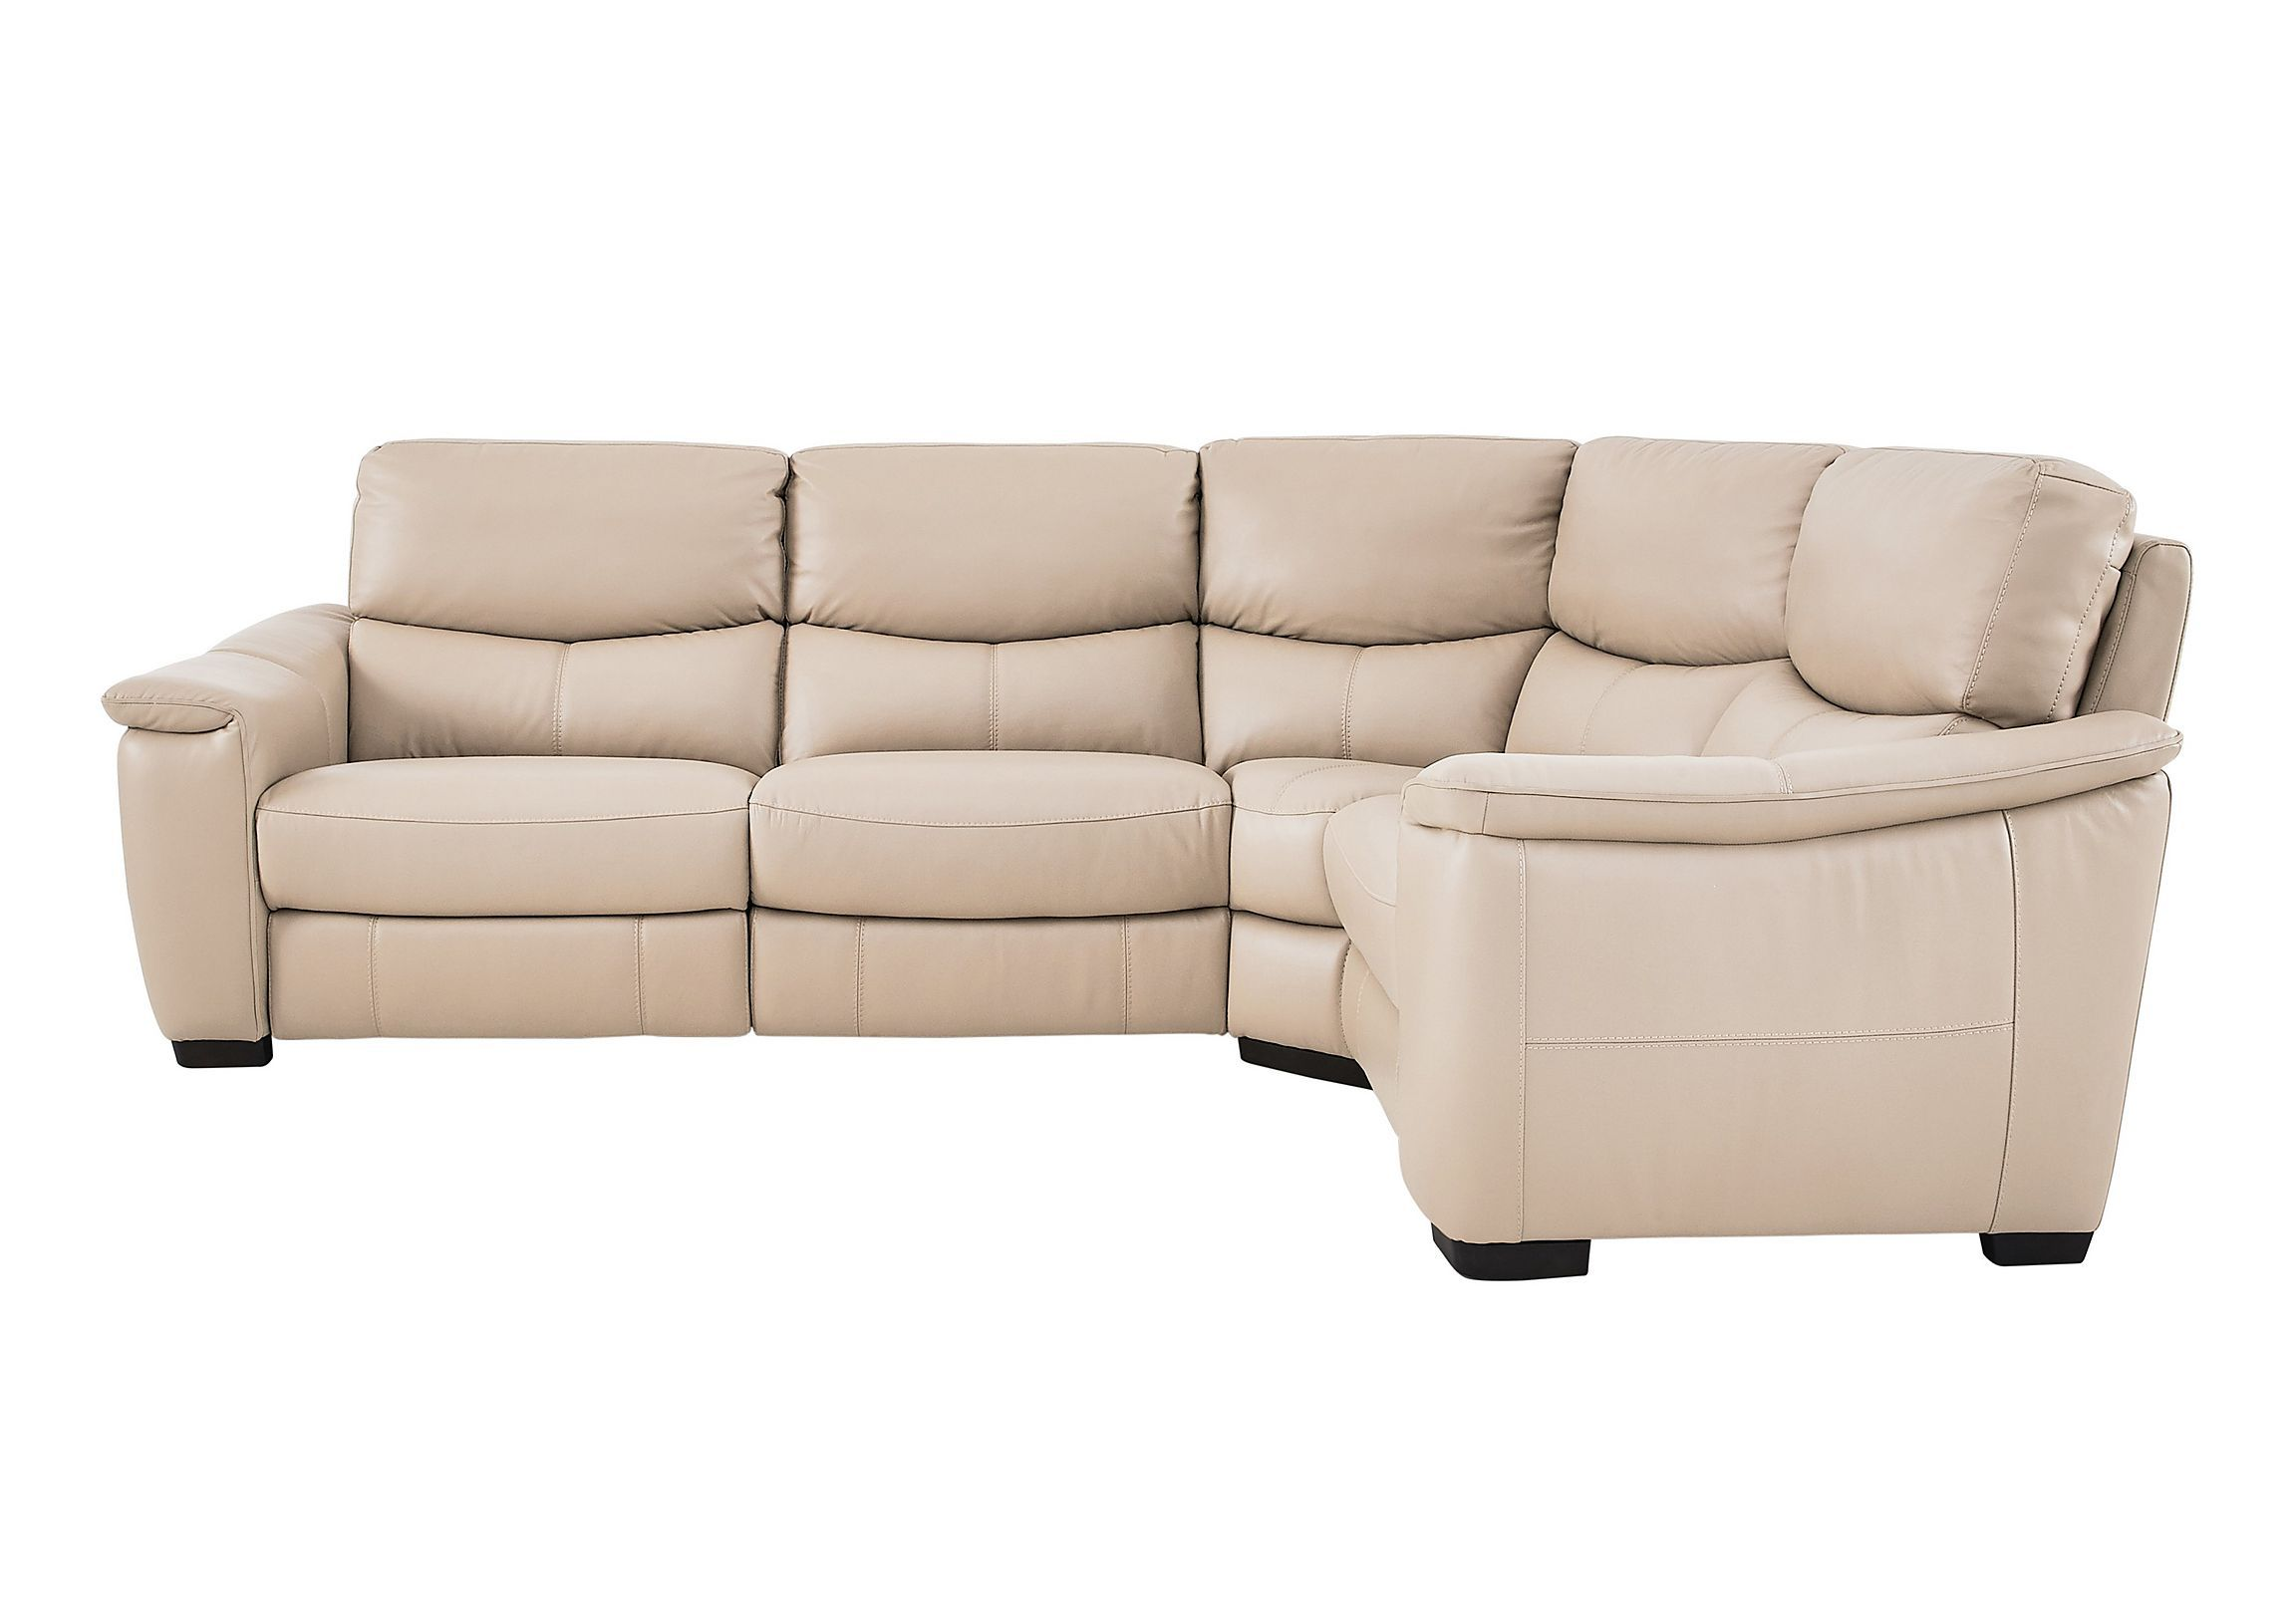 Ultra Comfortable Modern Corner Sofa Upholstered In Fabric Has Optional Power Or Manual Recliner And Soft Cushioning Living Room Update Corner Sofa Leather Recliner Recliner